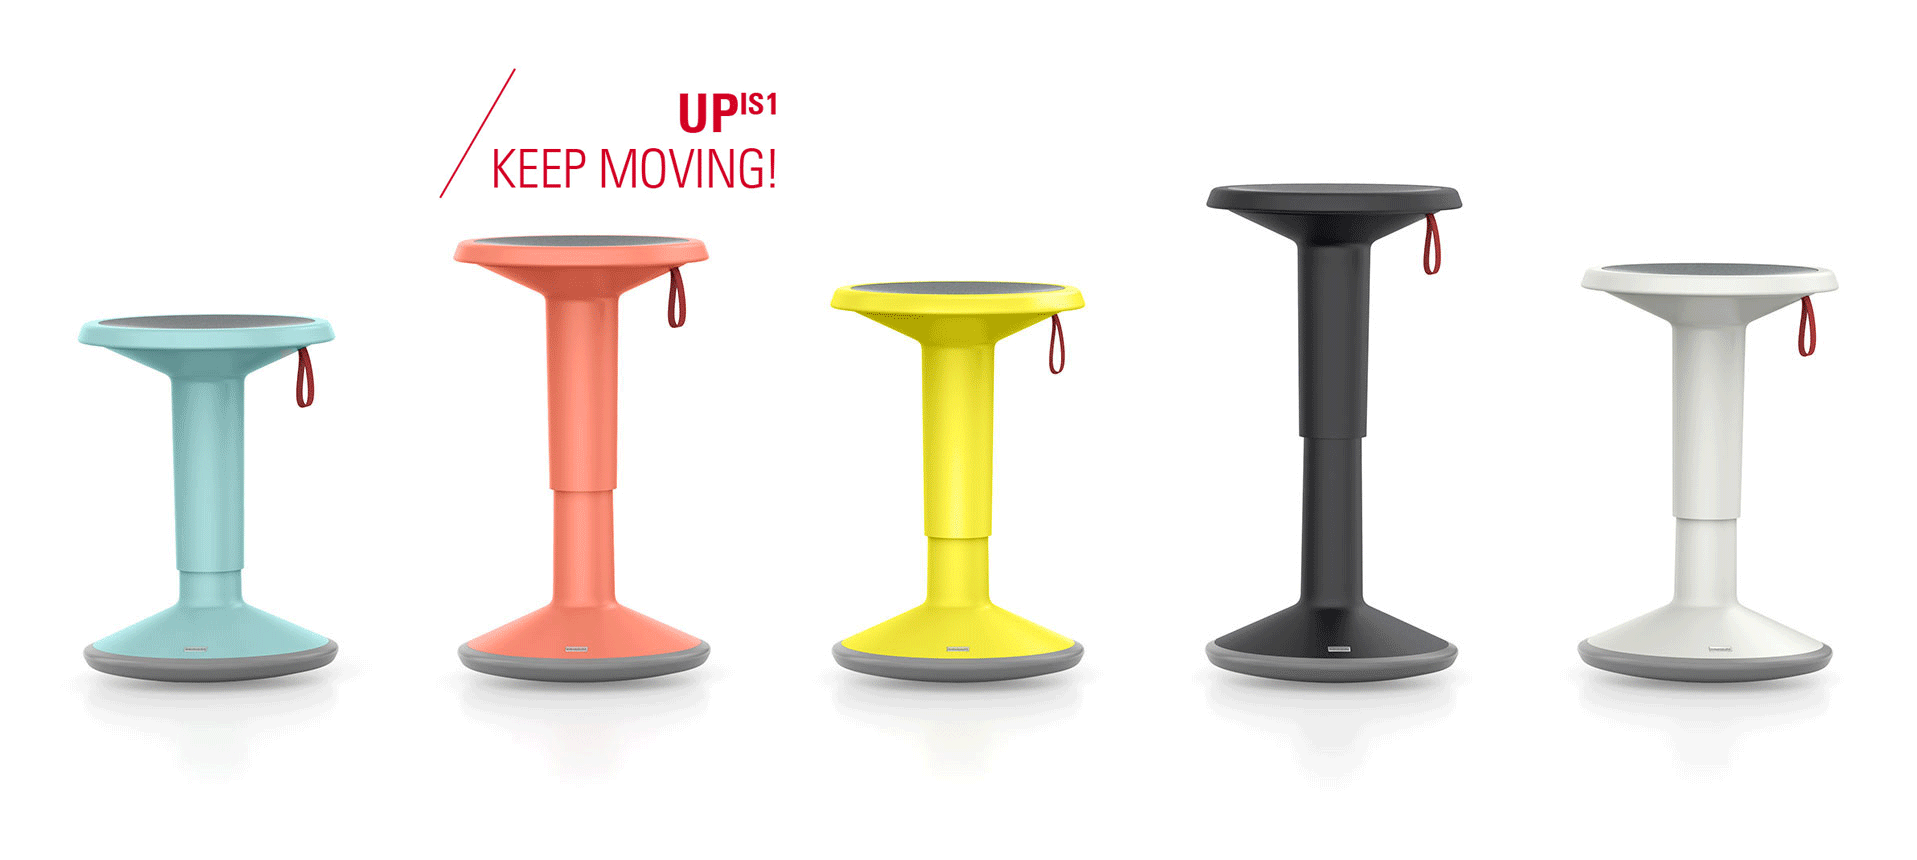 Exceptionnel As An Active Alternative To The Task Chair, UPis1 Brings A Healthy Change  To The Desk. UPis1 Stools